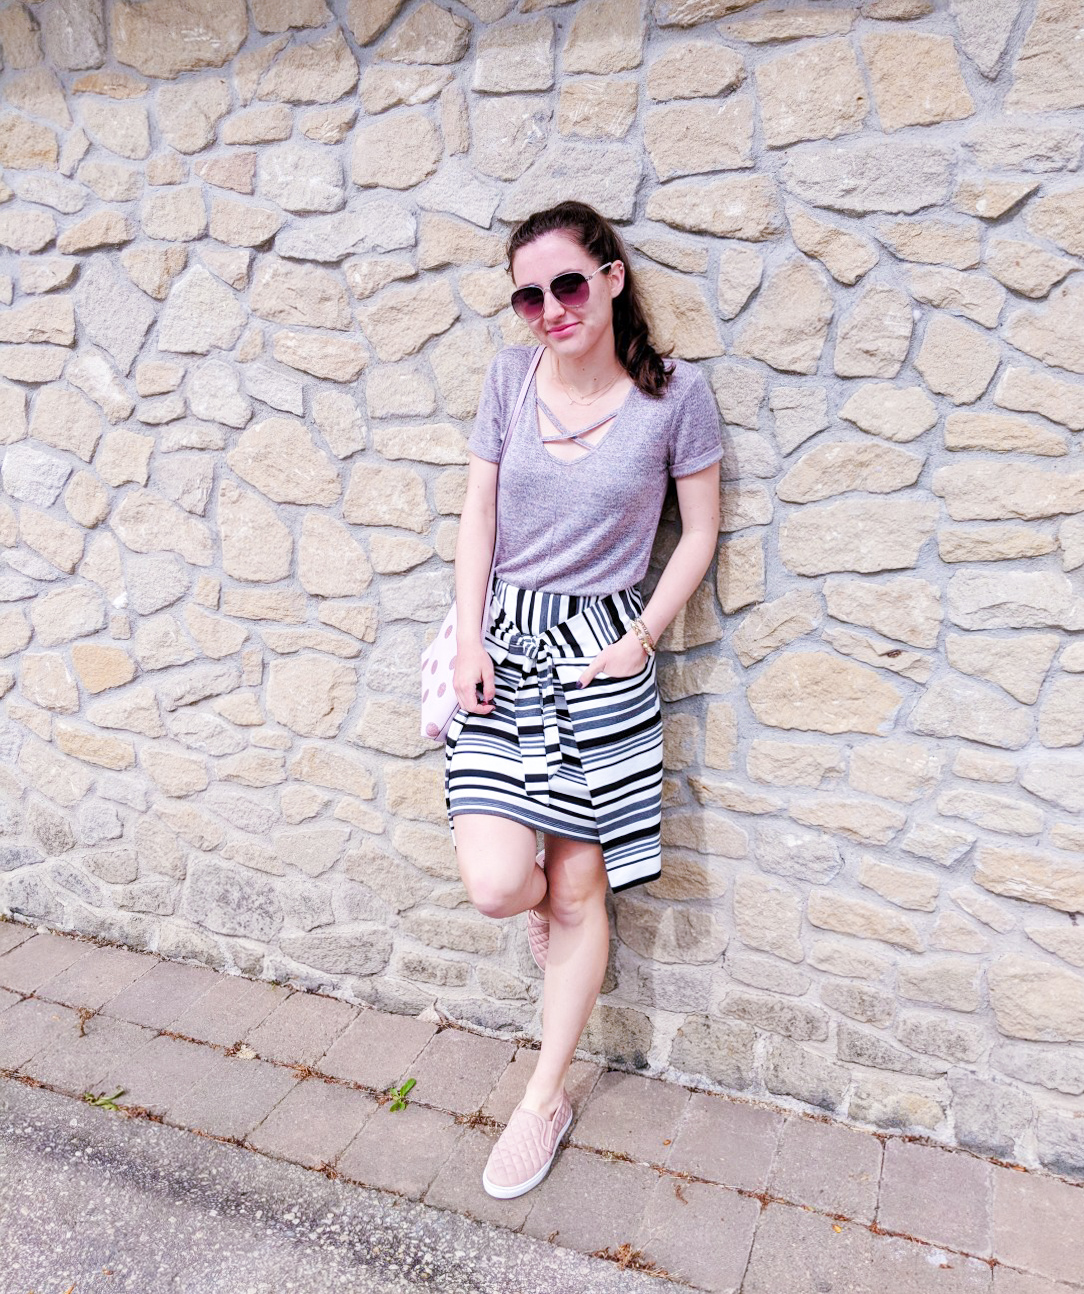 blush top, striped skirt, Cabi clothing, blush sneakers, pattern mixing